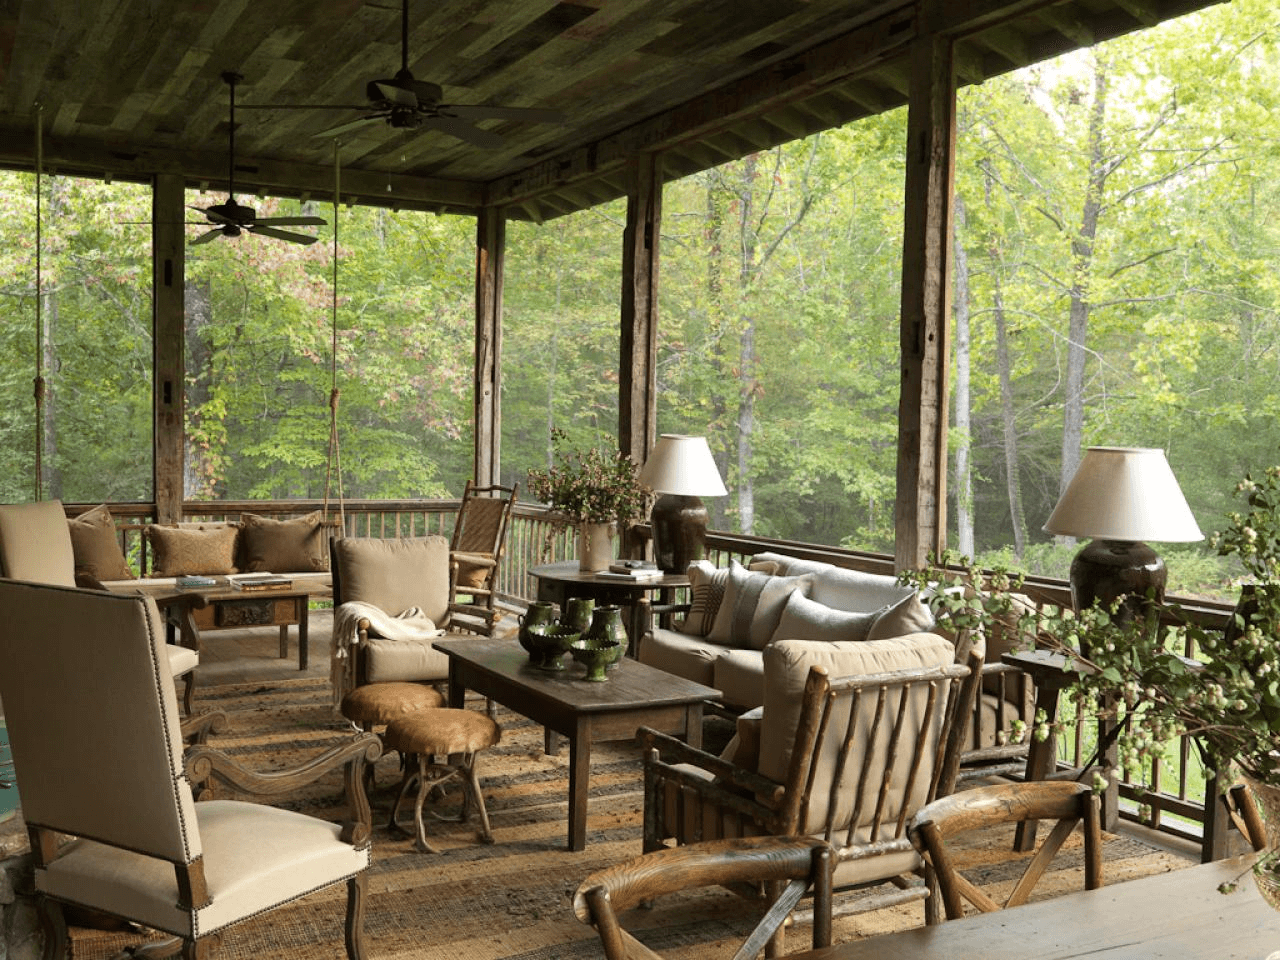 RUSTIC BACKYARD PORCH IDEAS